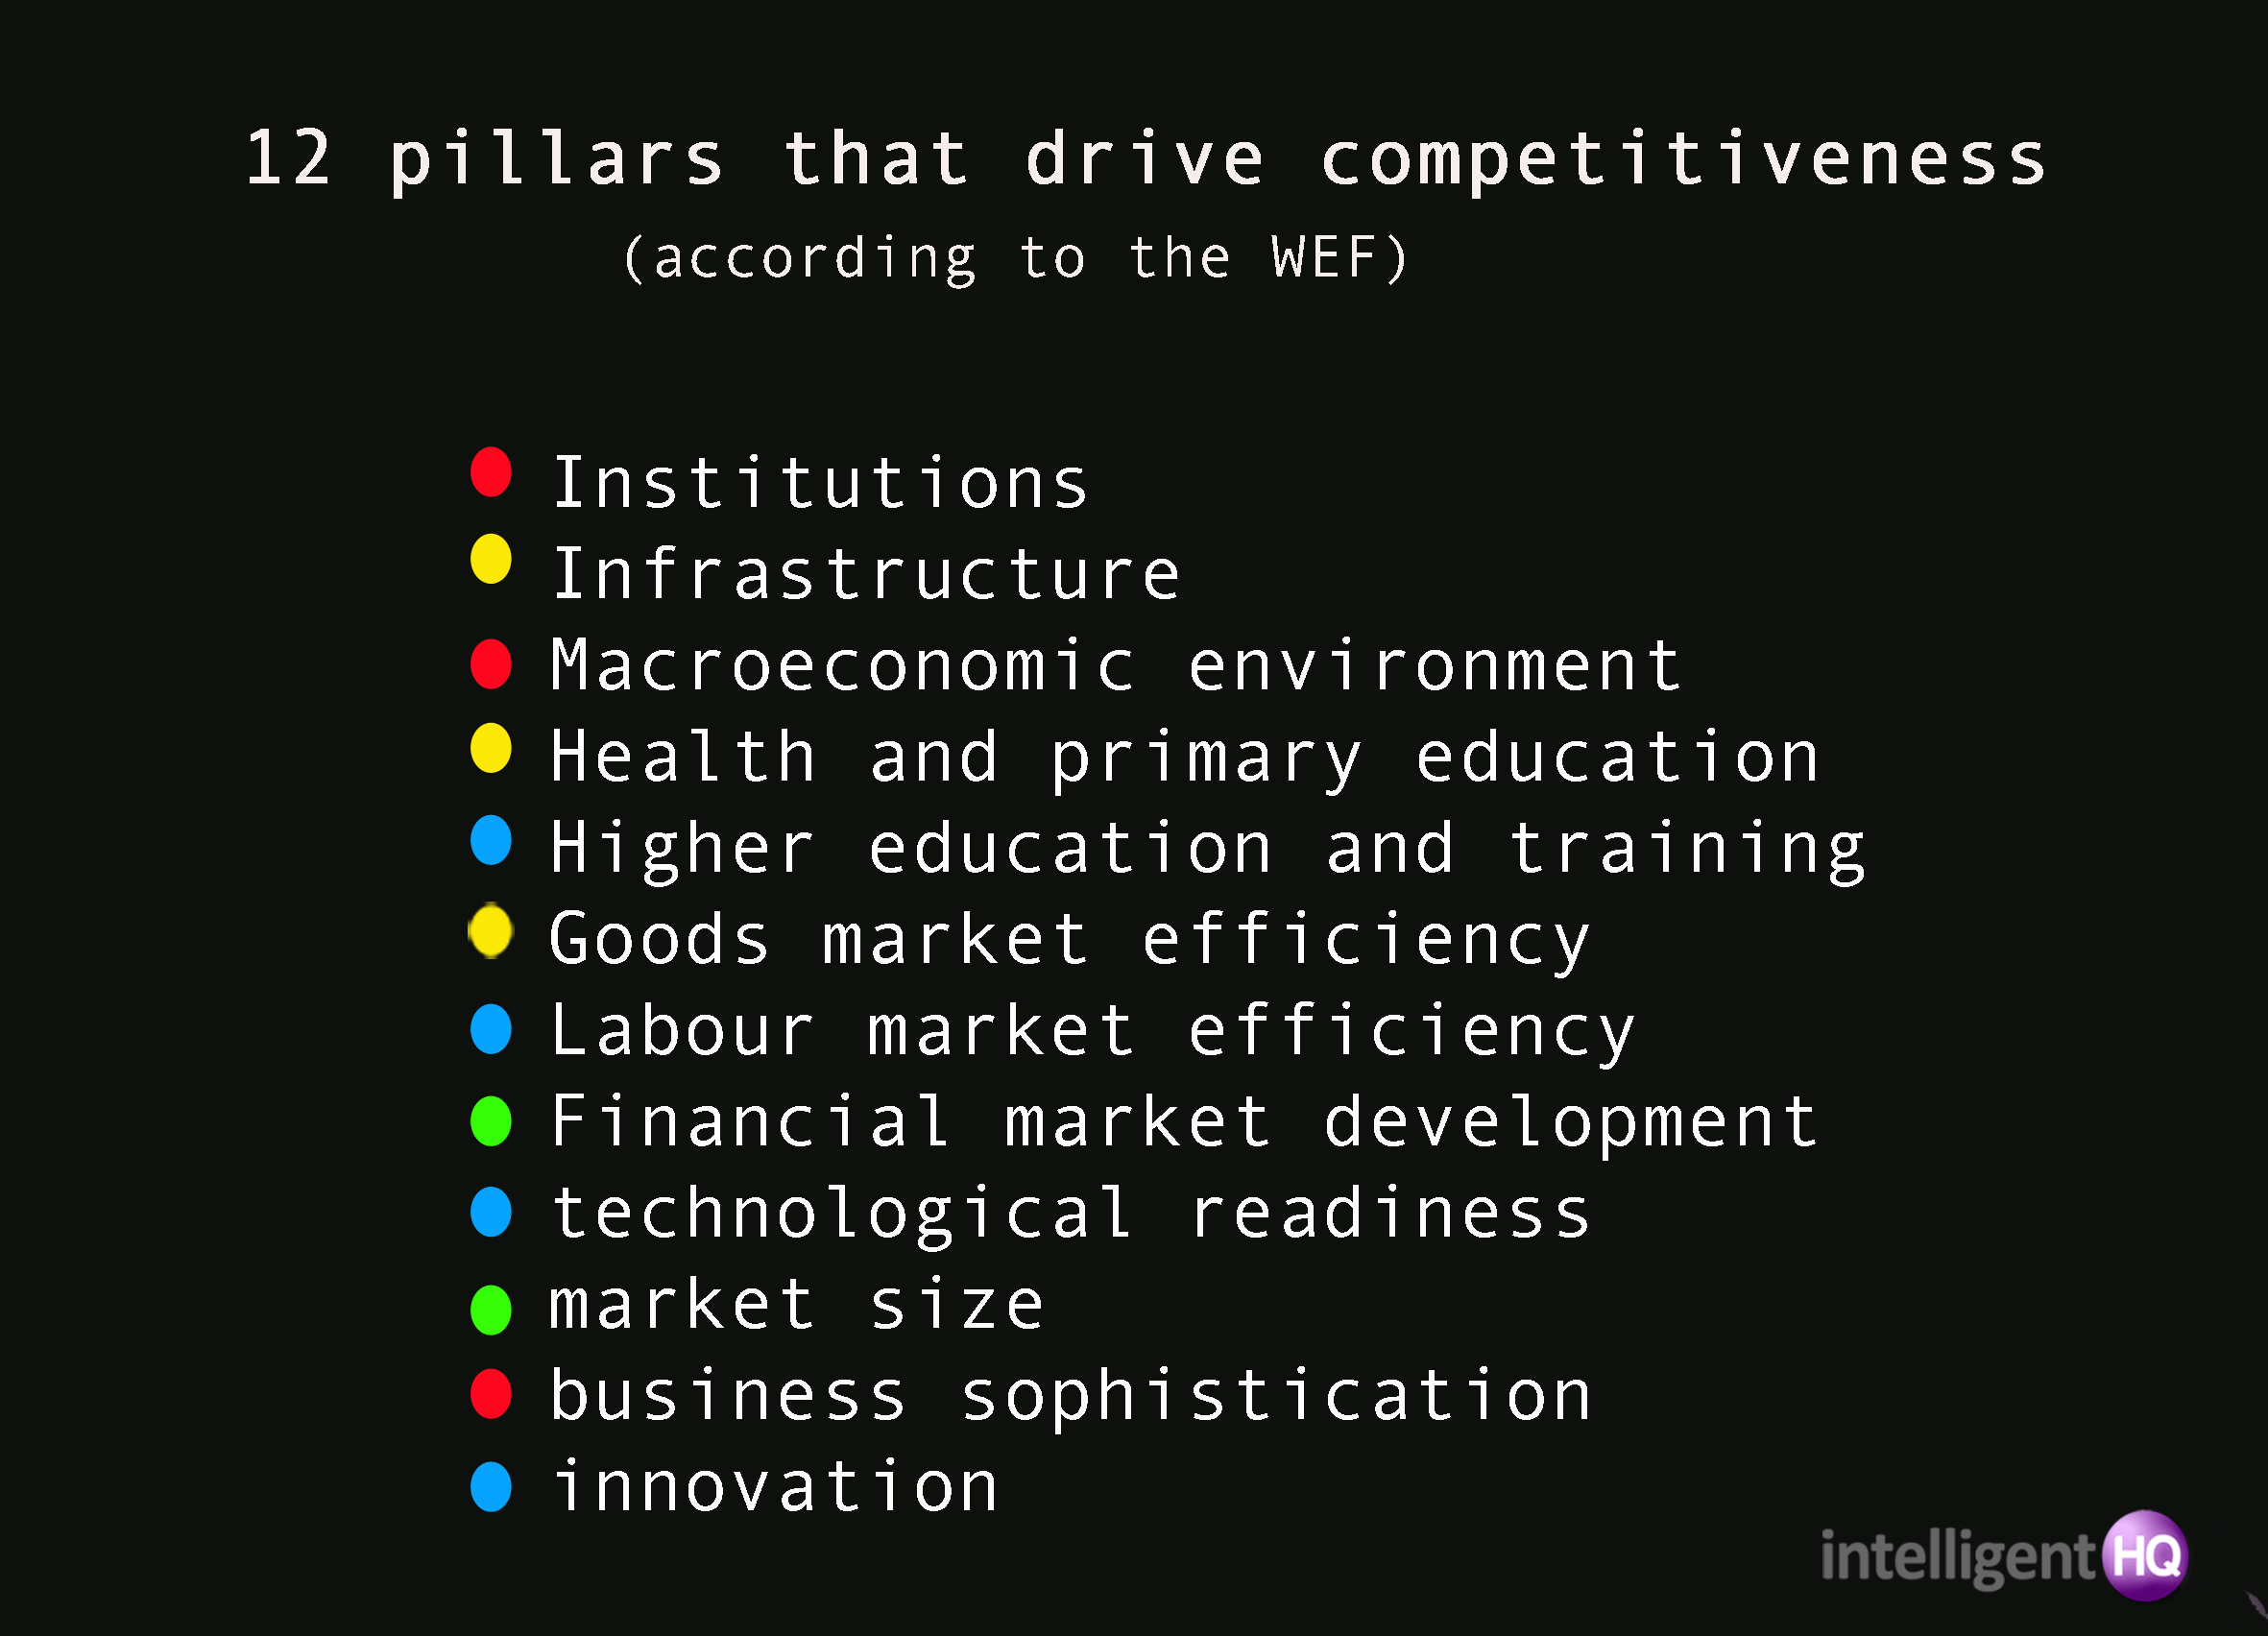 12 pillars that drive competitiveness Intelligenthq